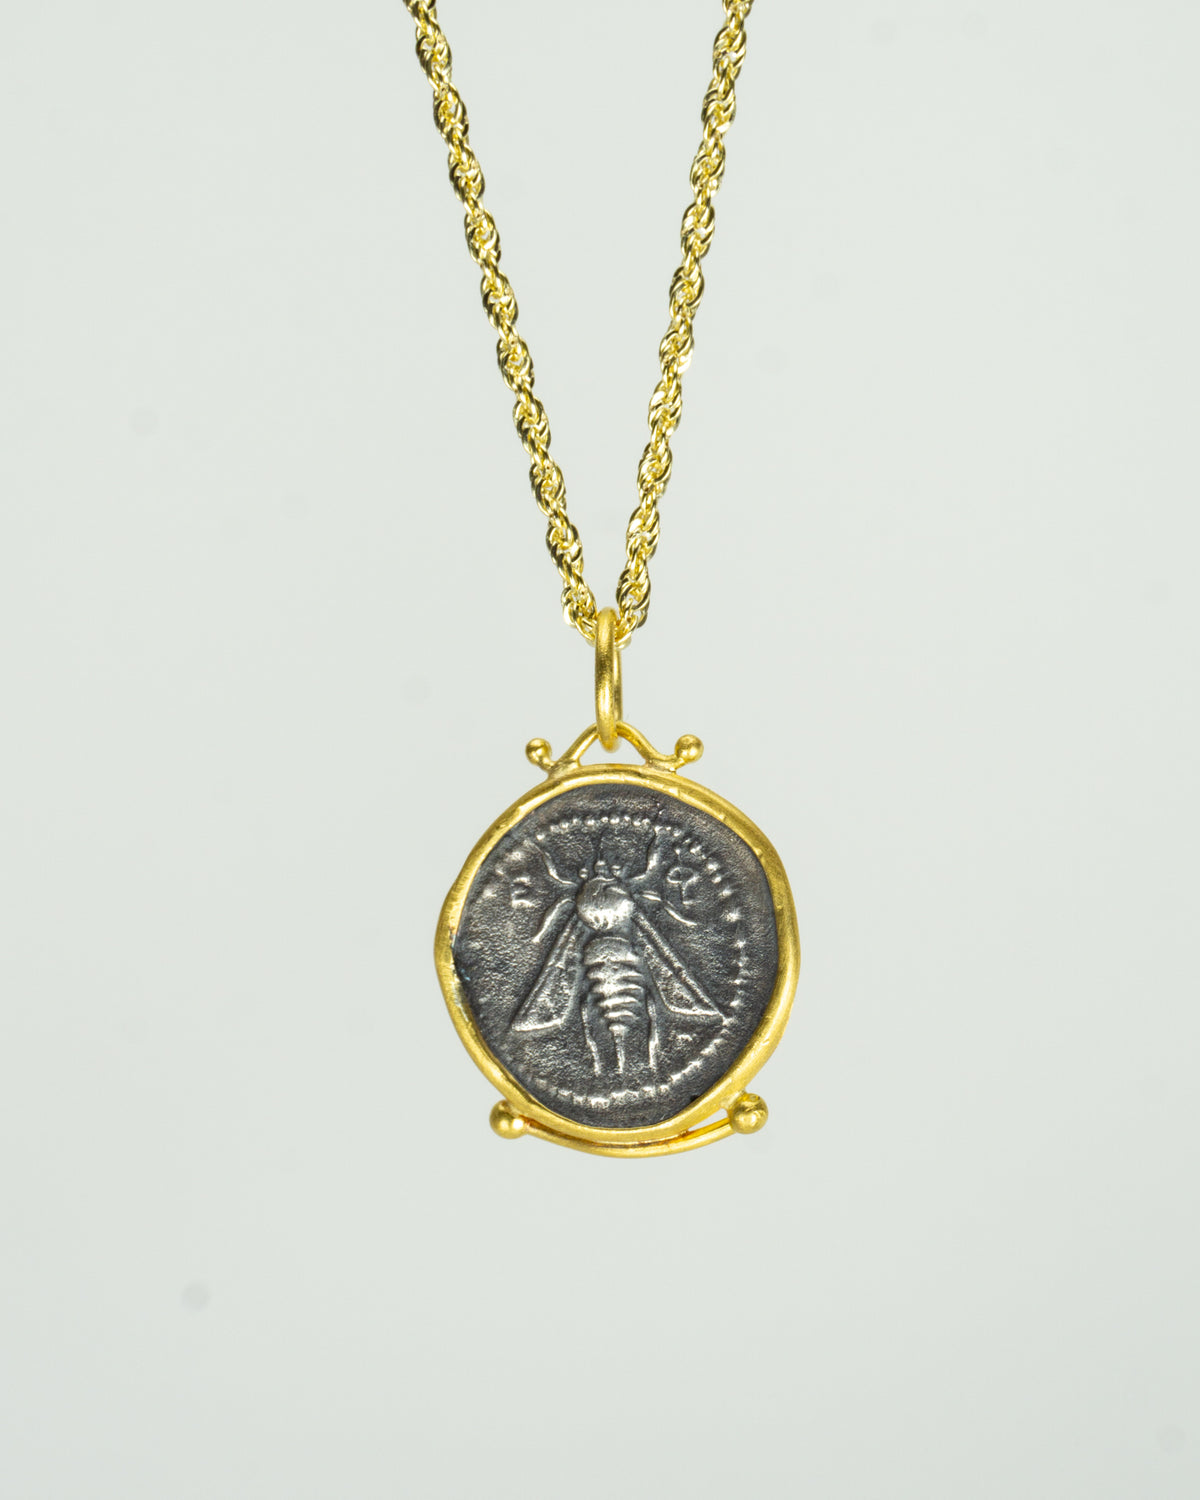 Ephesus Coin - Tetradrachm necklace